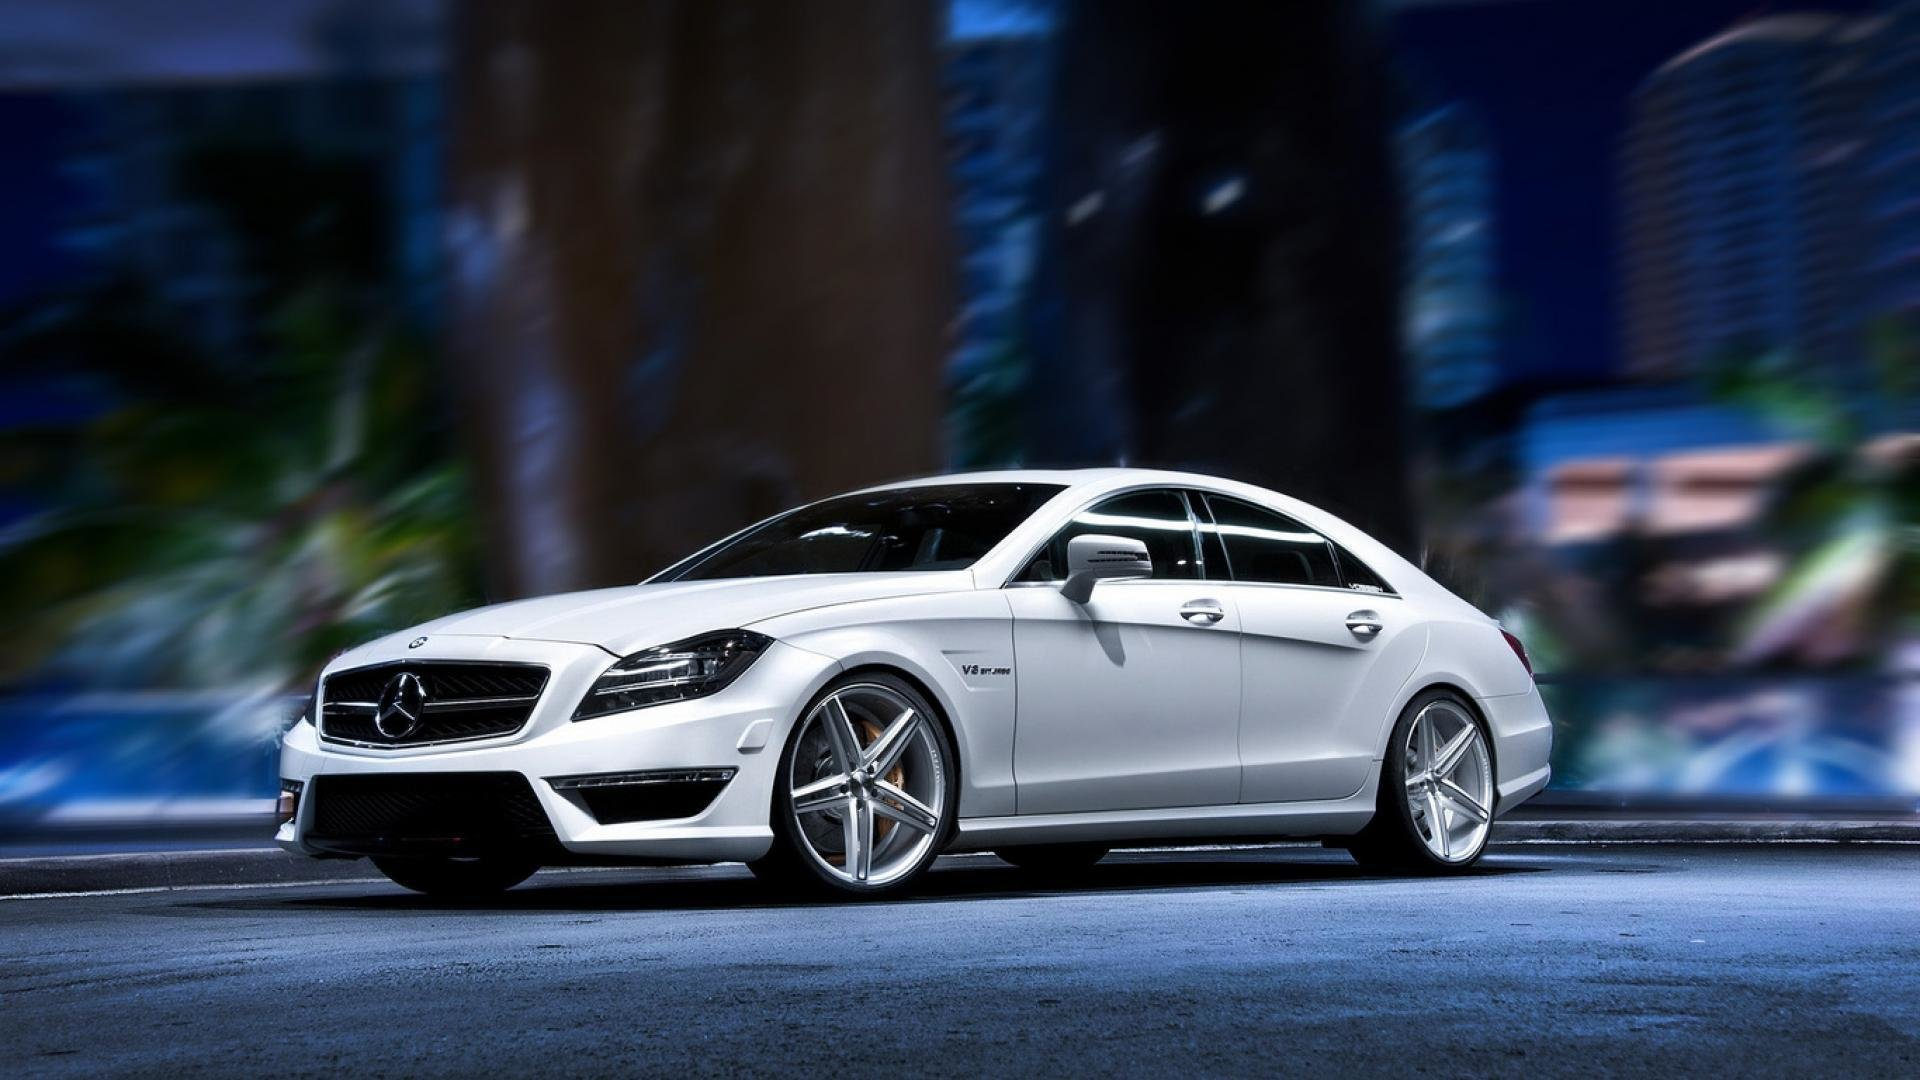 Latest Mercedes Benz Wallpapers Wallpaper Cave Free Download